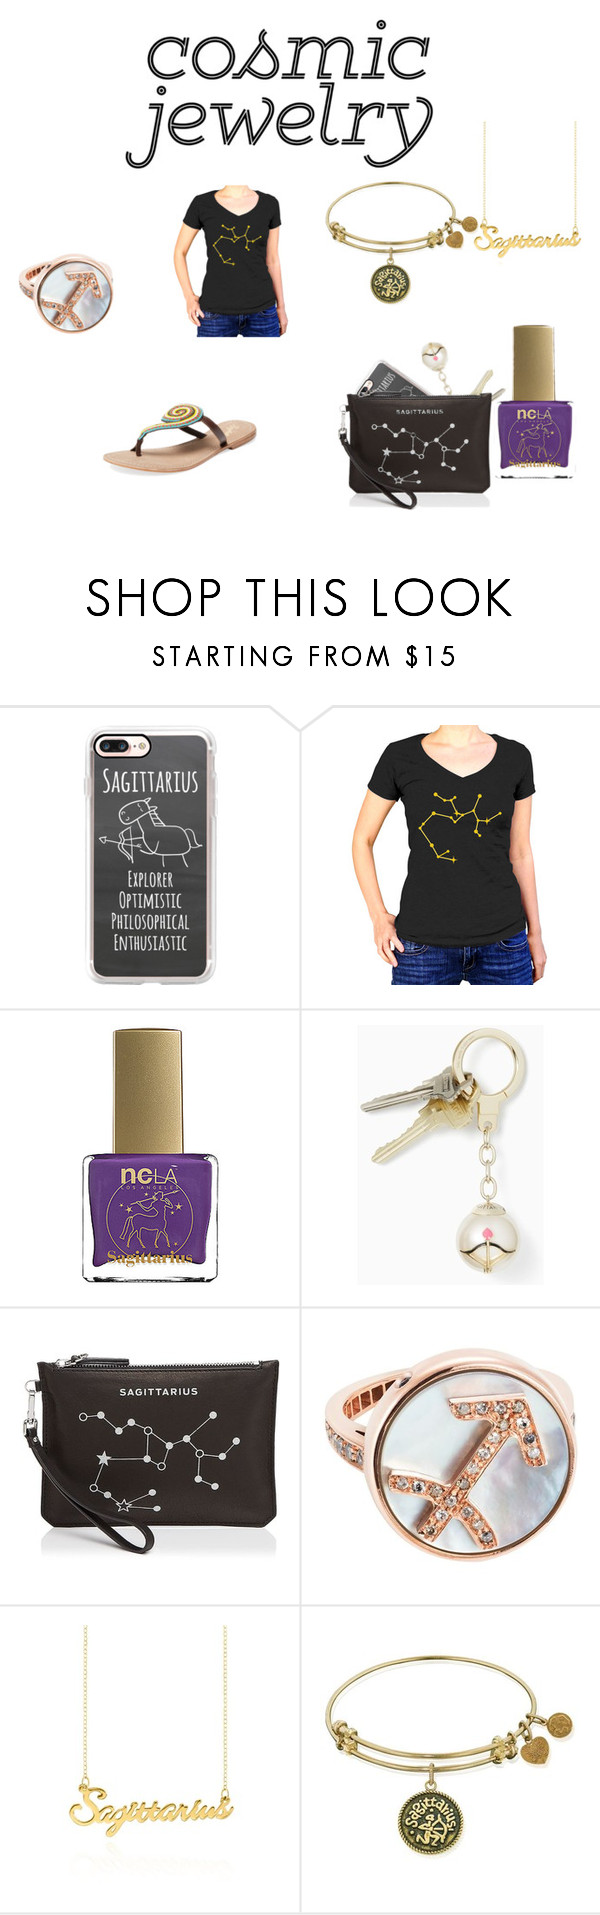 """""""Sagittarius"""" by silverrayz ❤ liked on Polyvore featuring Casetify, ncLA, Kate Spade, Etienne Aigner, Carolina Bucci, Belk & Co. and Seychelles"""